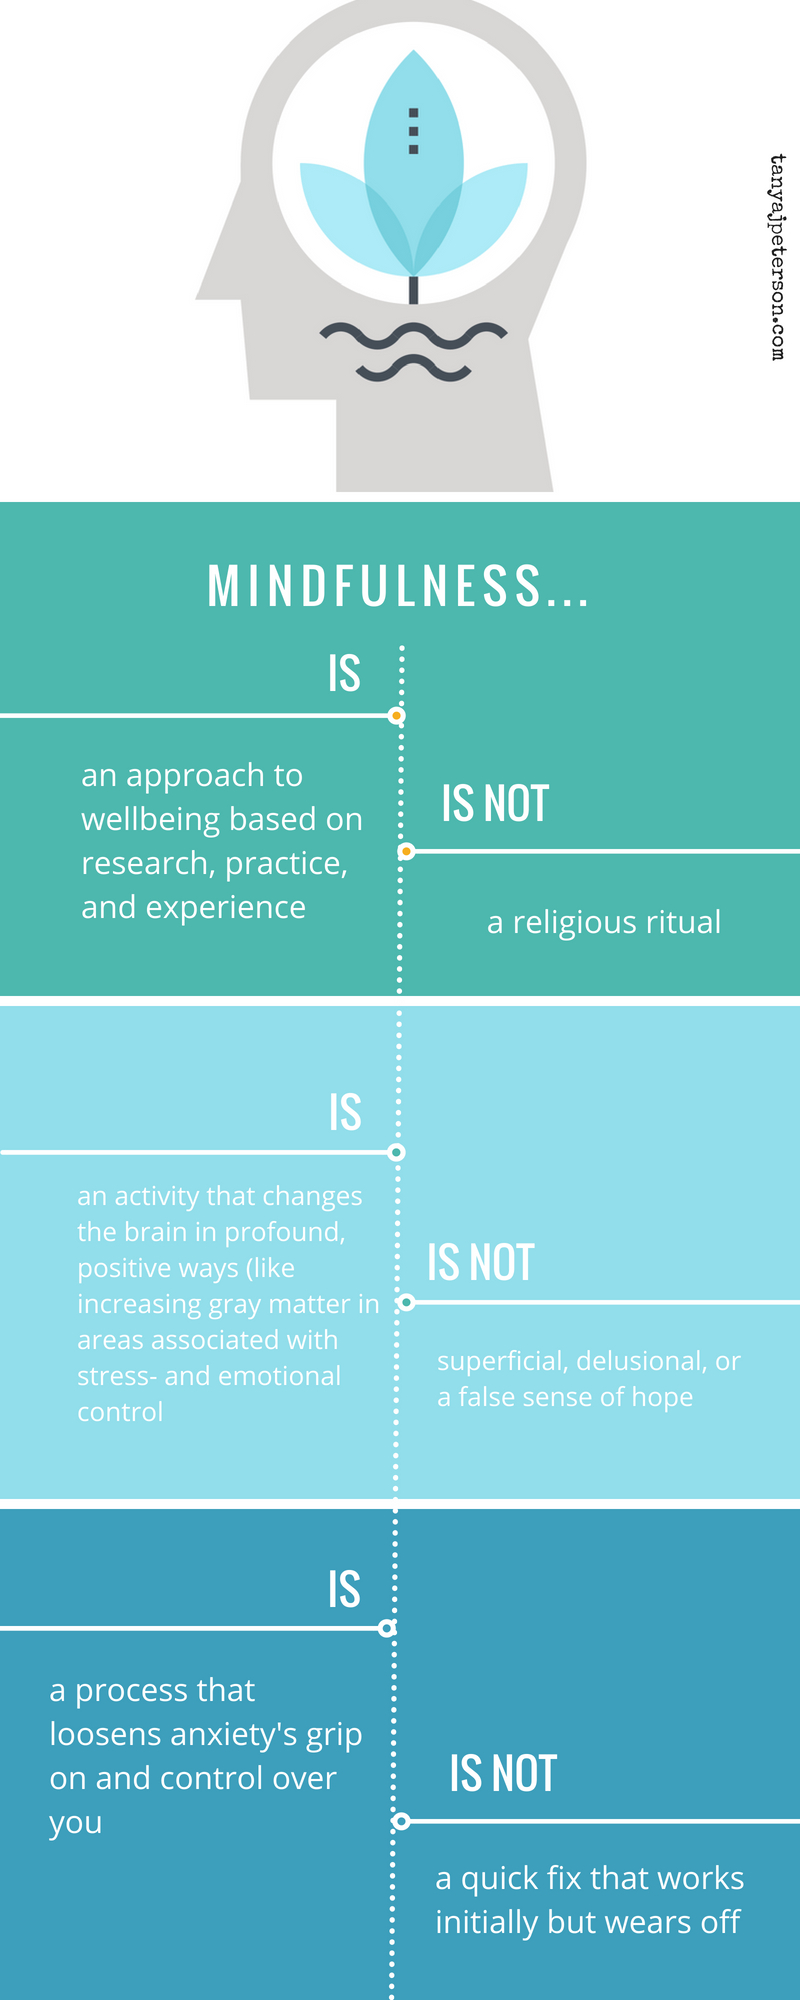 What, exactly, is mindfulness? It's a term we hear often lately, but there are misconceptions about it. This infographic is a peek at what it is and isn't.